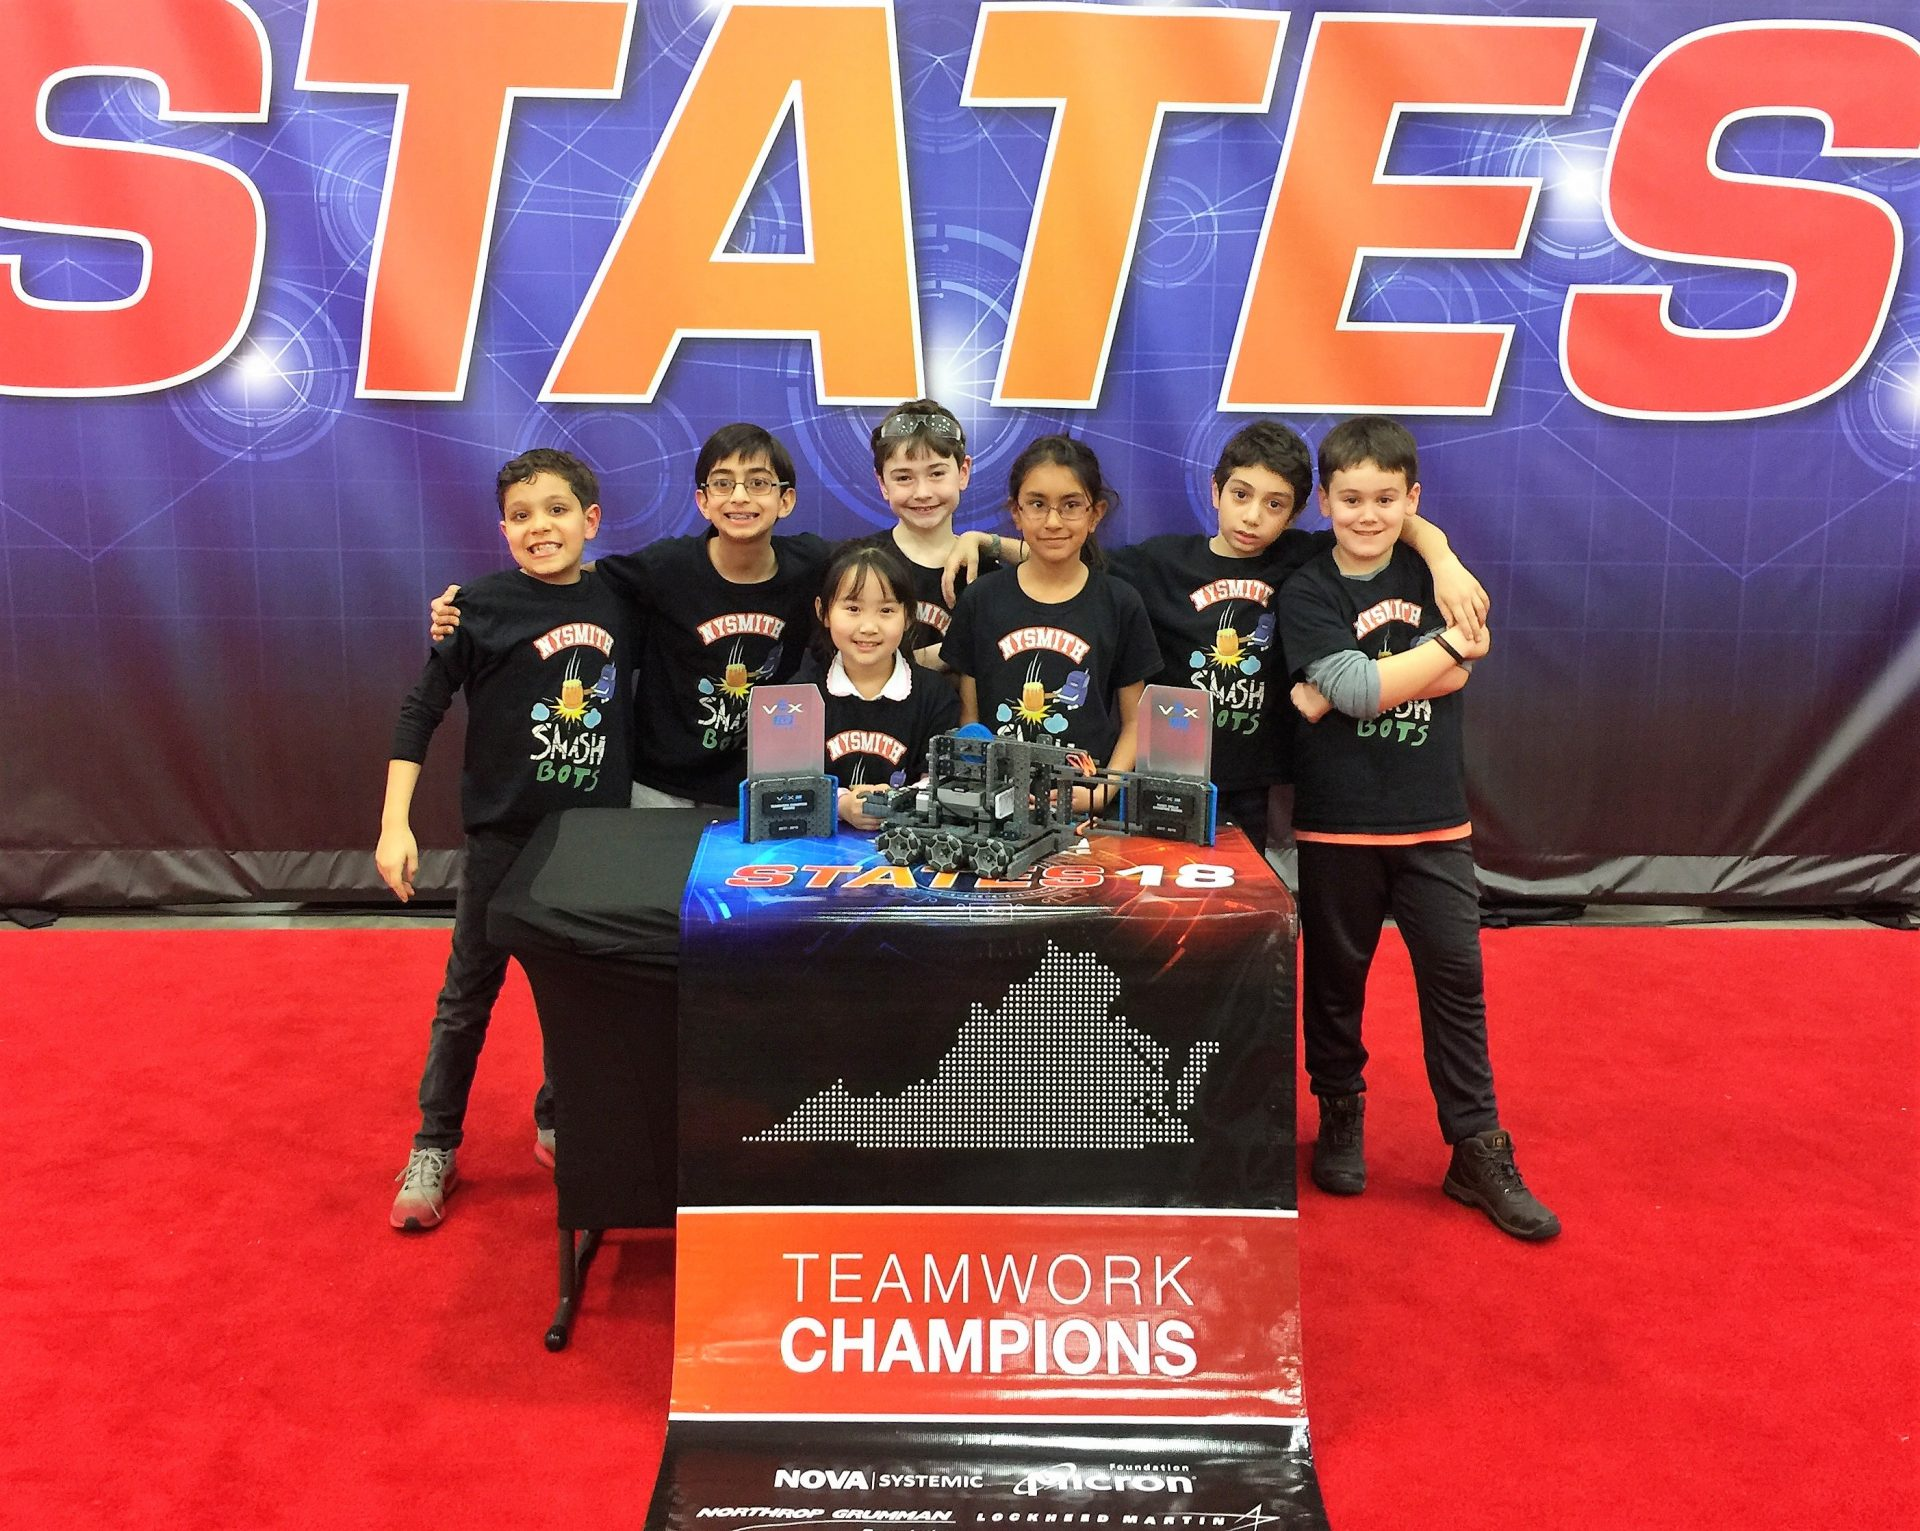 FEB. 2018: SMASHBOTS WIN VEX IQ ROBOTICS CHALLENGE